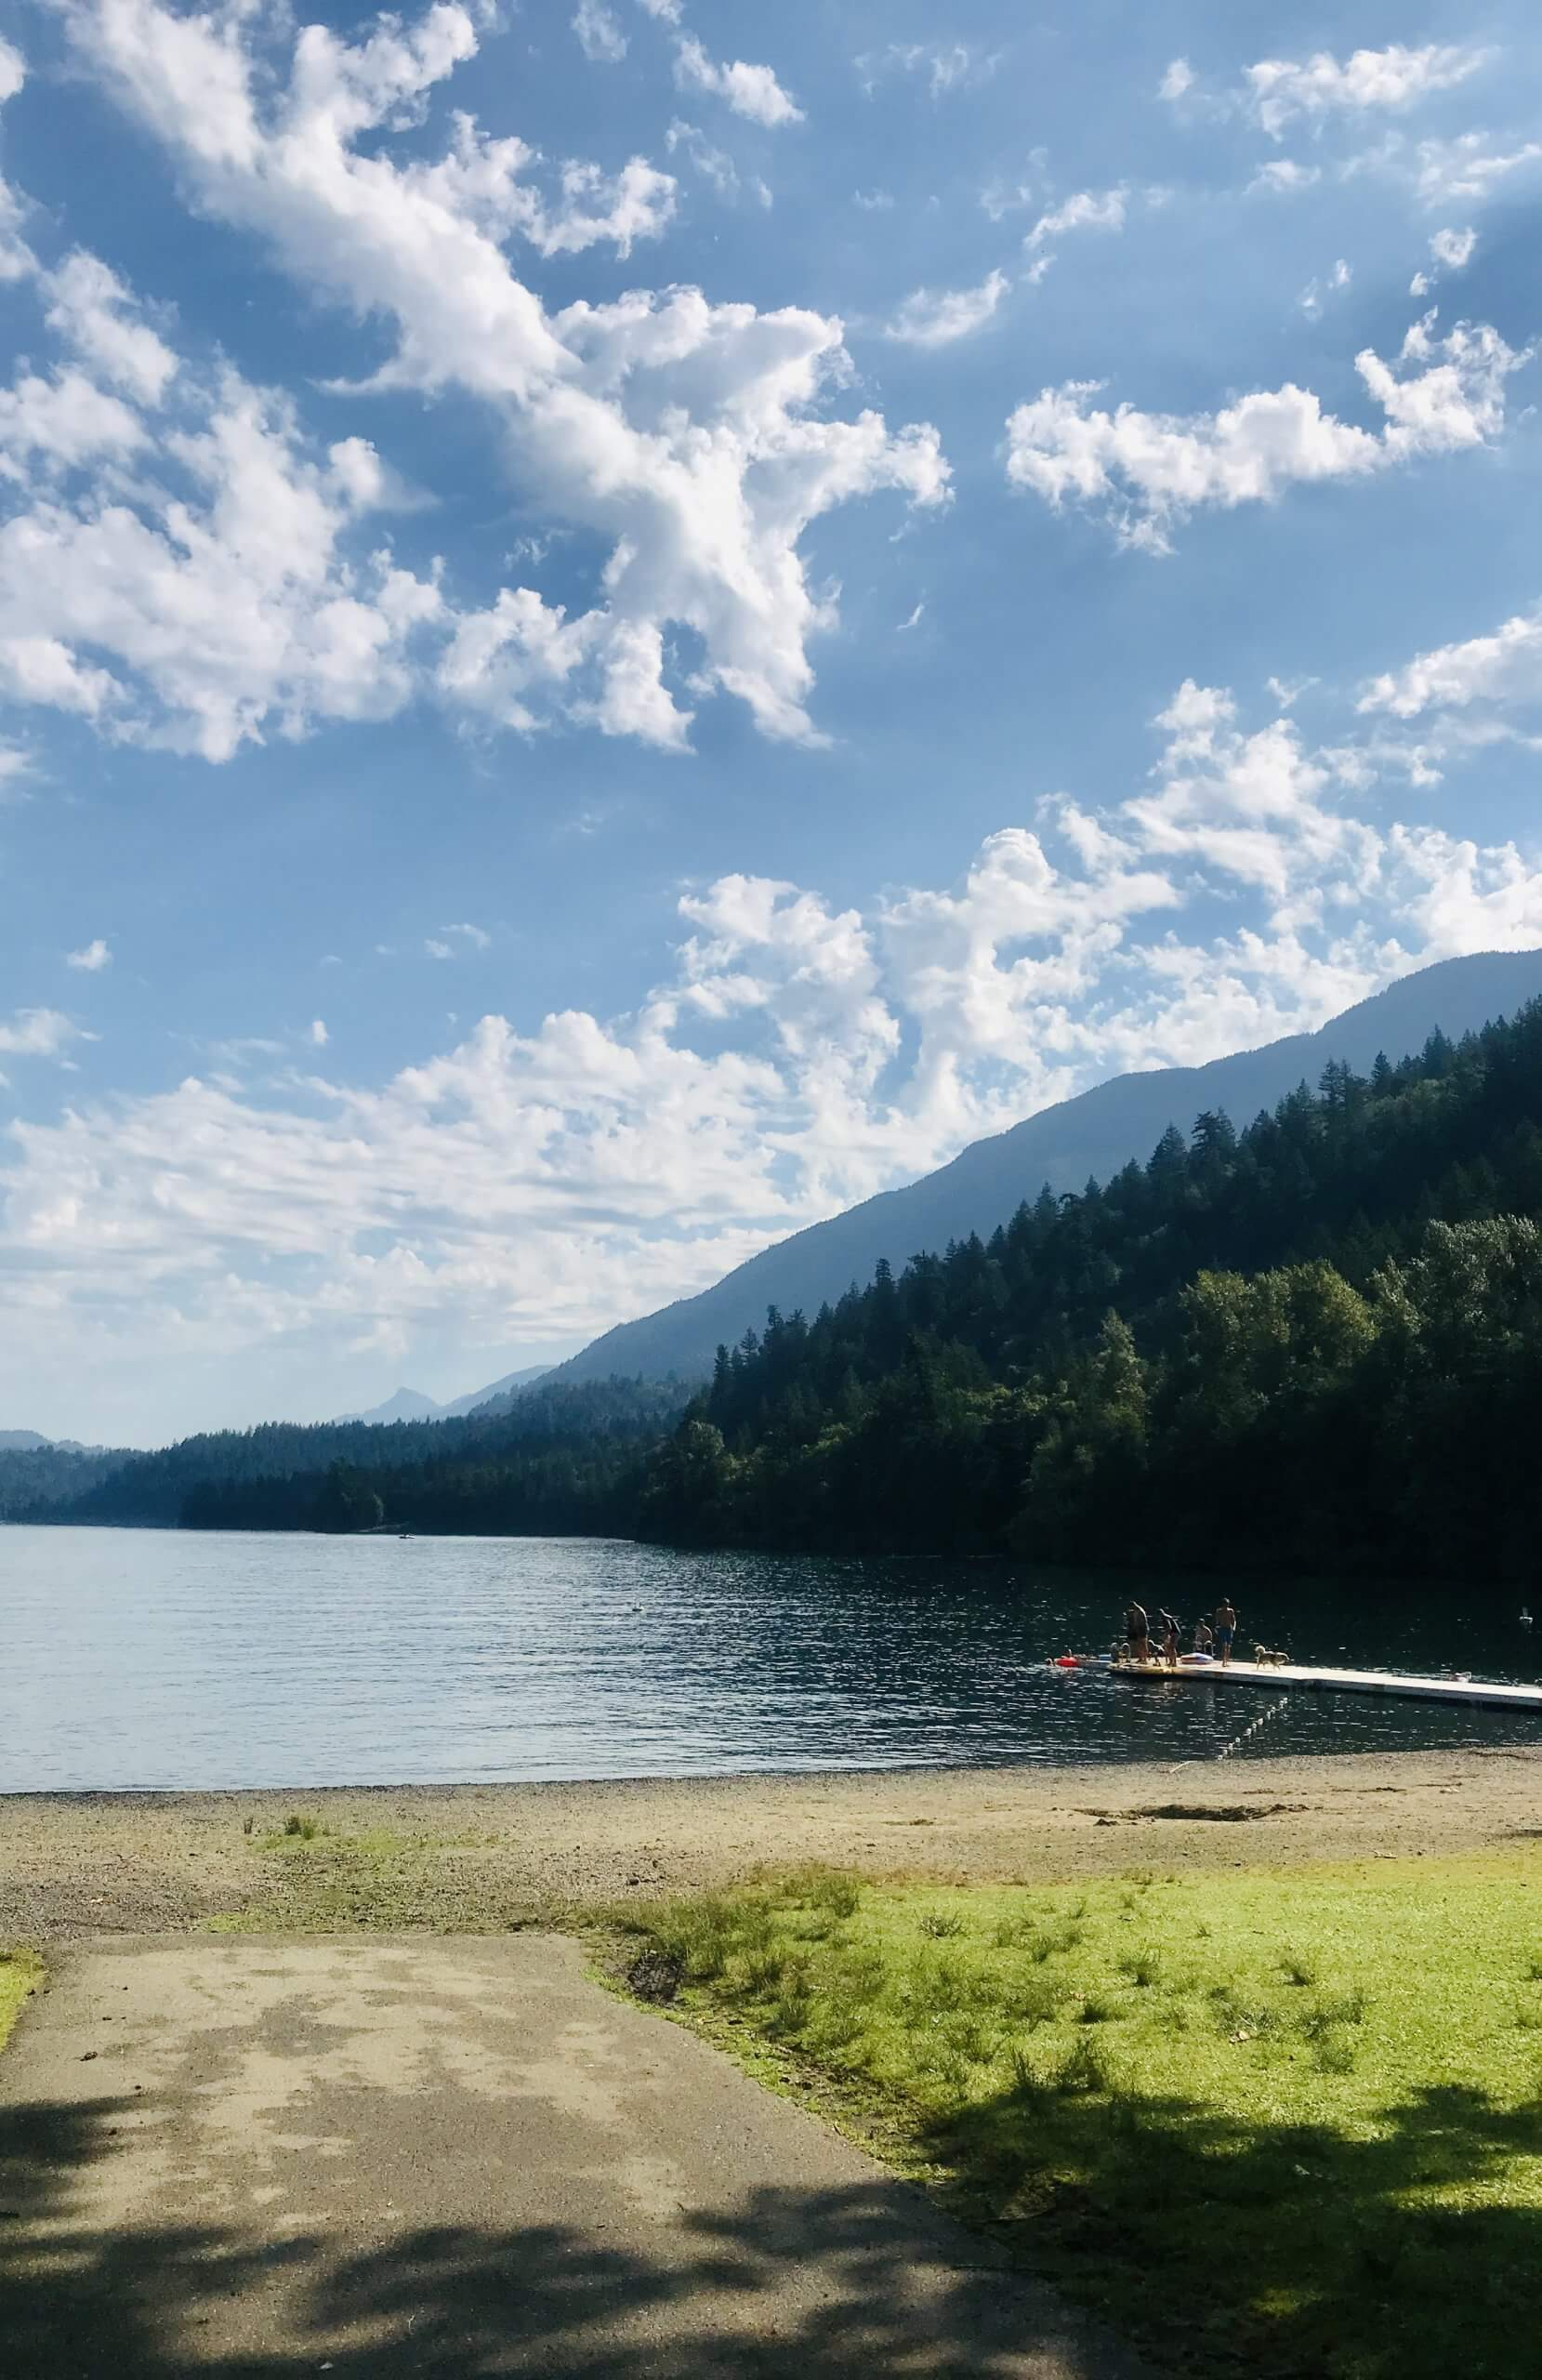 Cultus Lake, with blue skies, white clouds, the beach and crystal clear lake